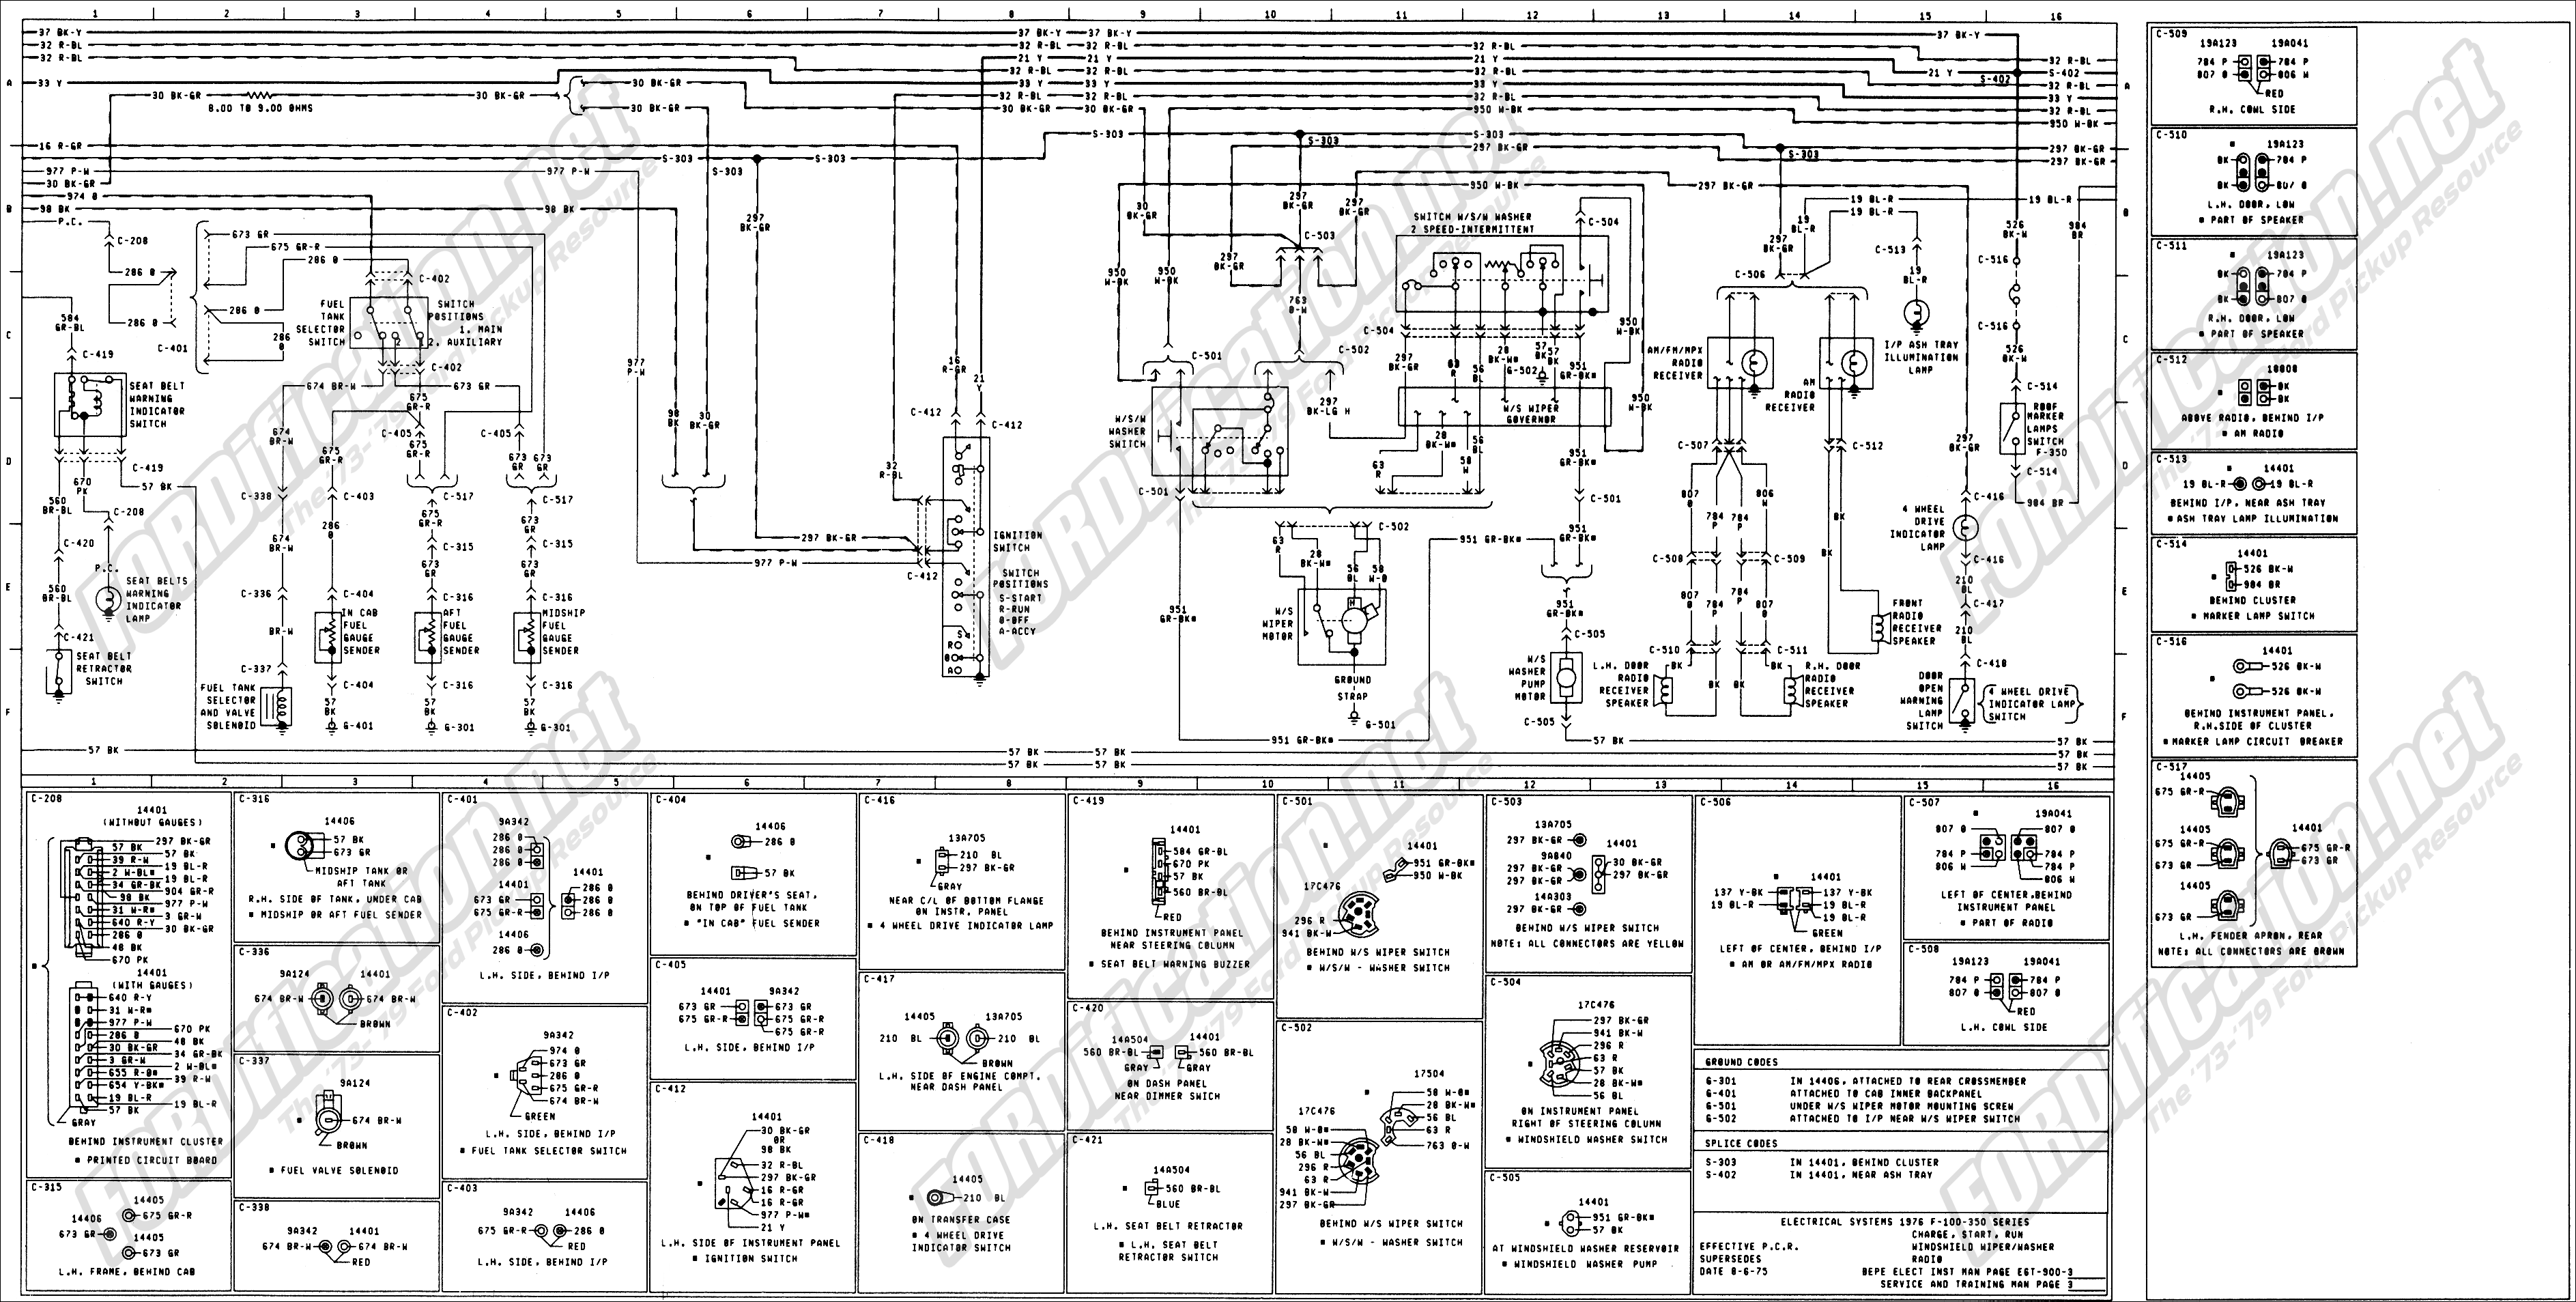 2002 Ford Explorer Starter Wiring Diagram Starting Know About 2003 Ranger Edge 1973 1979 Truck Diagrams Schematics